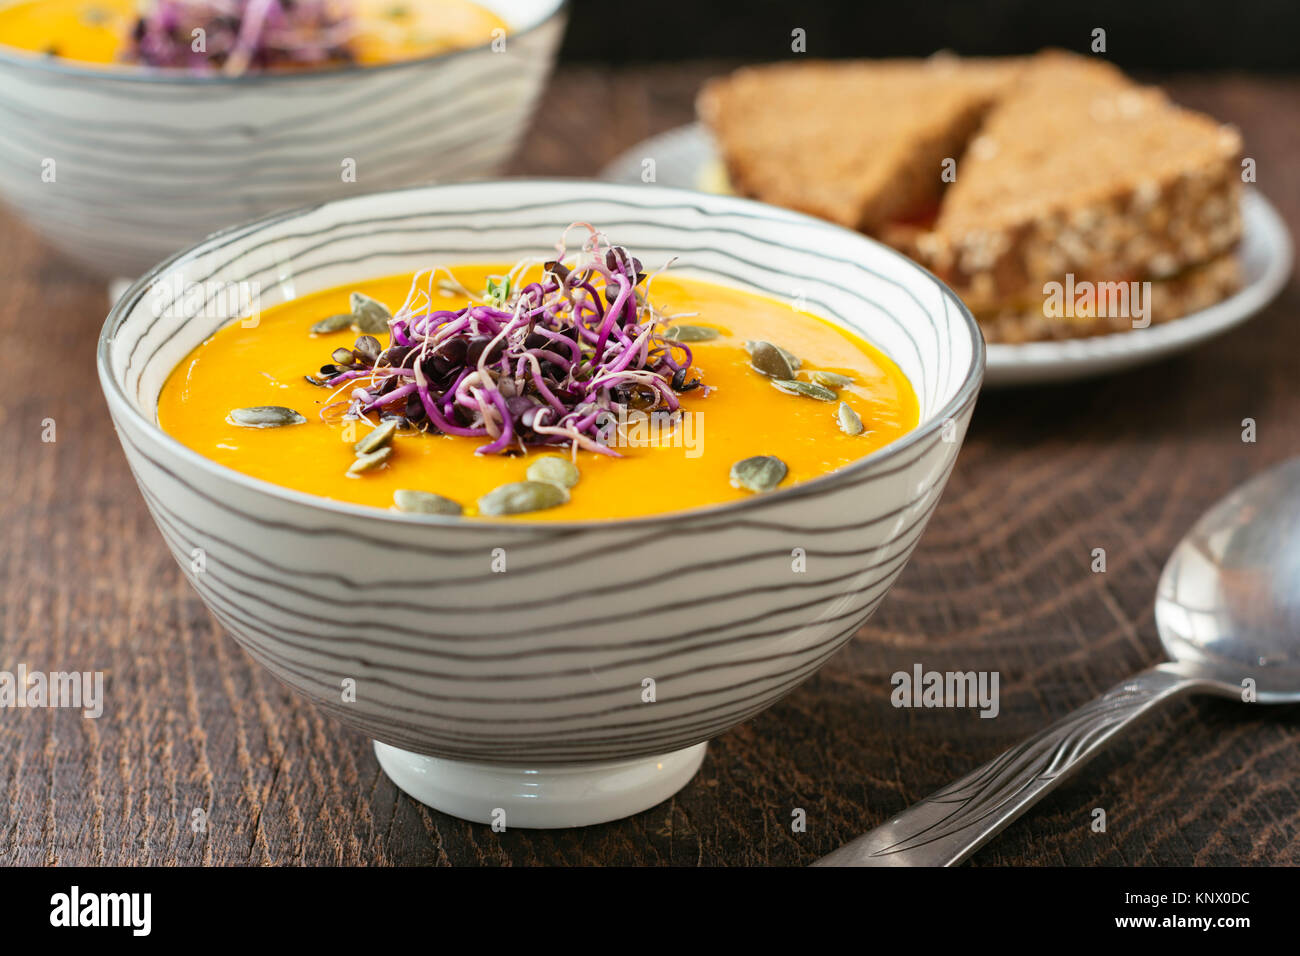 Spicy Squash Soup, gardnished with radish sprouts and pumpkin seeds. Stock Photo